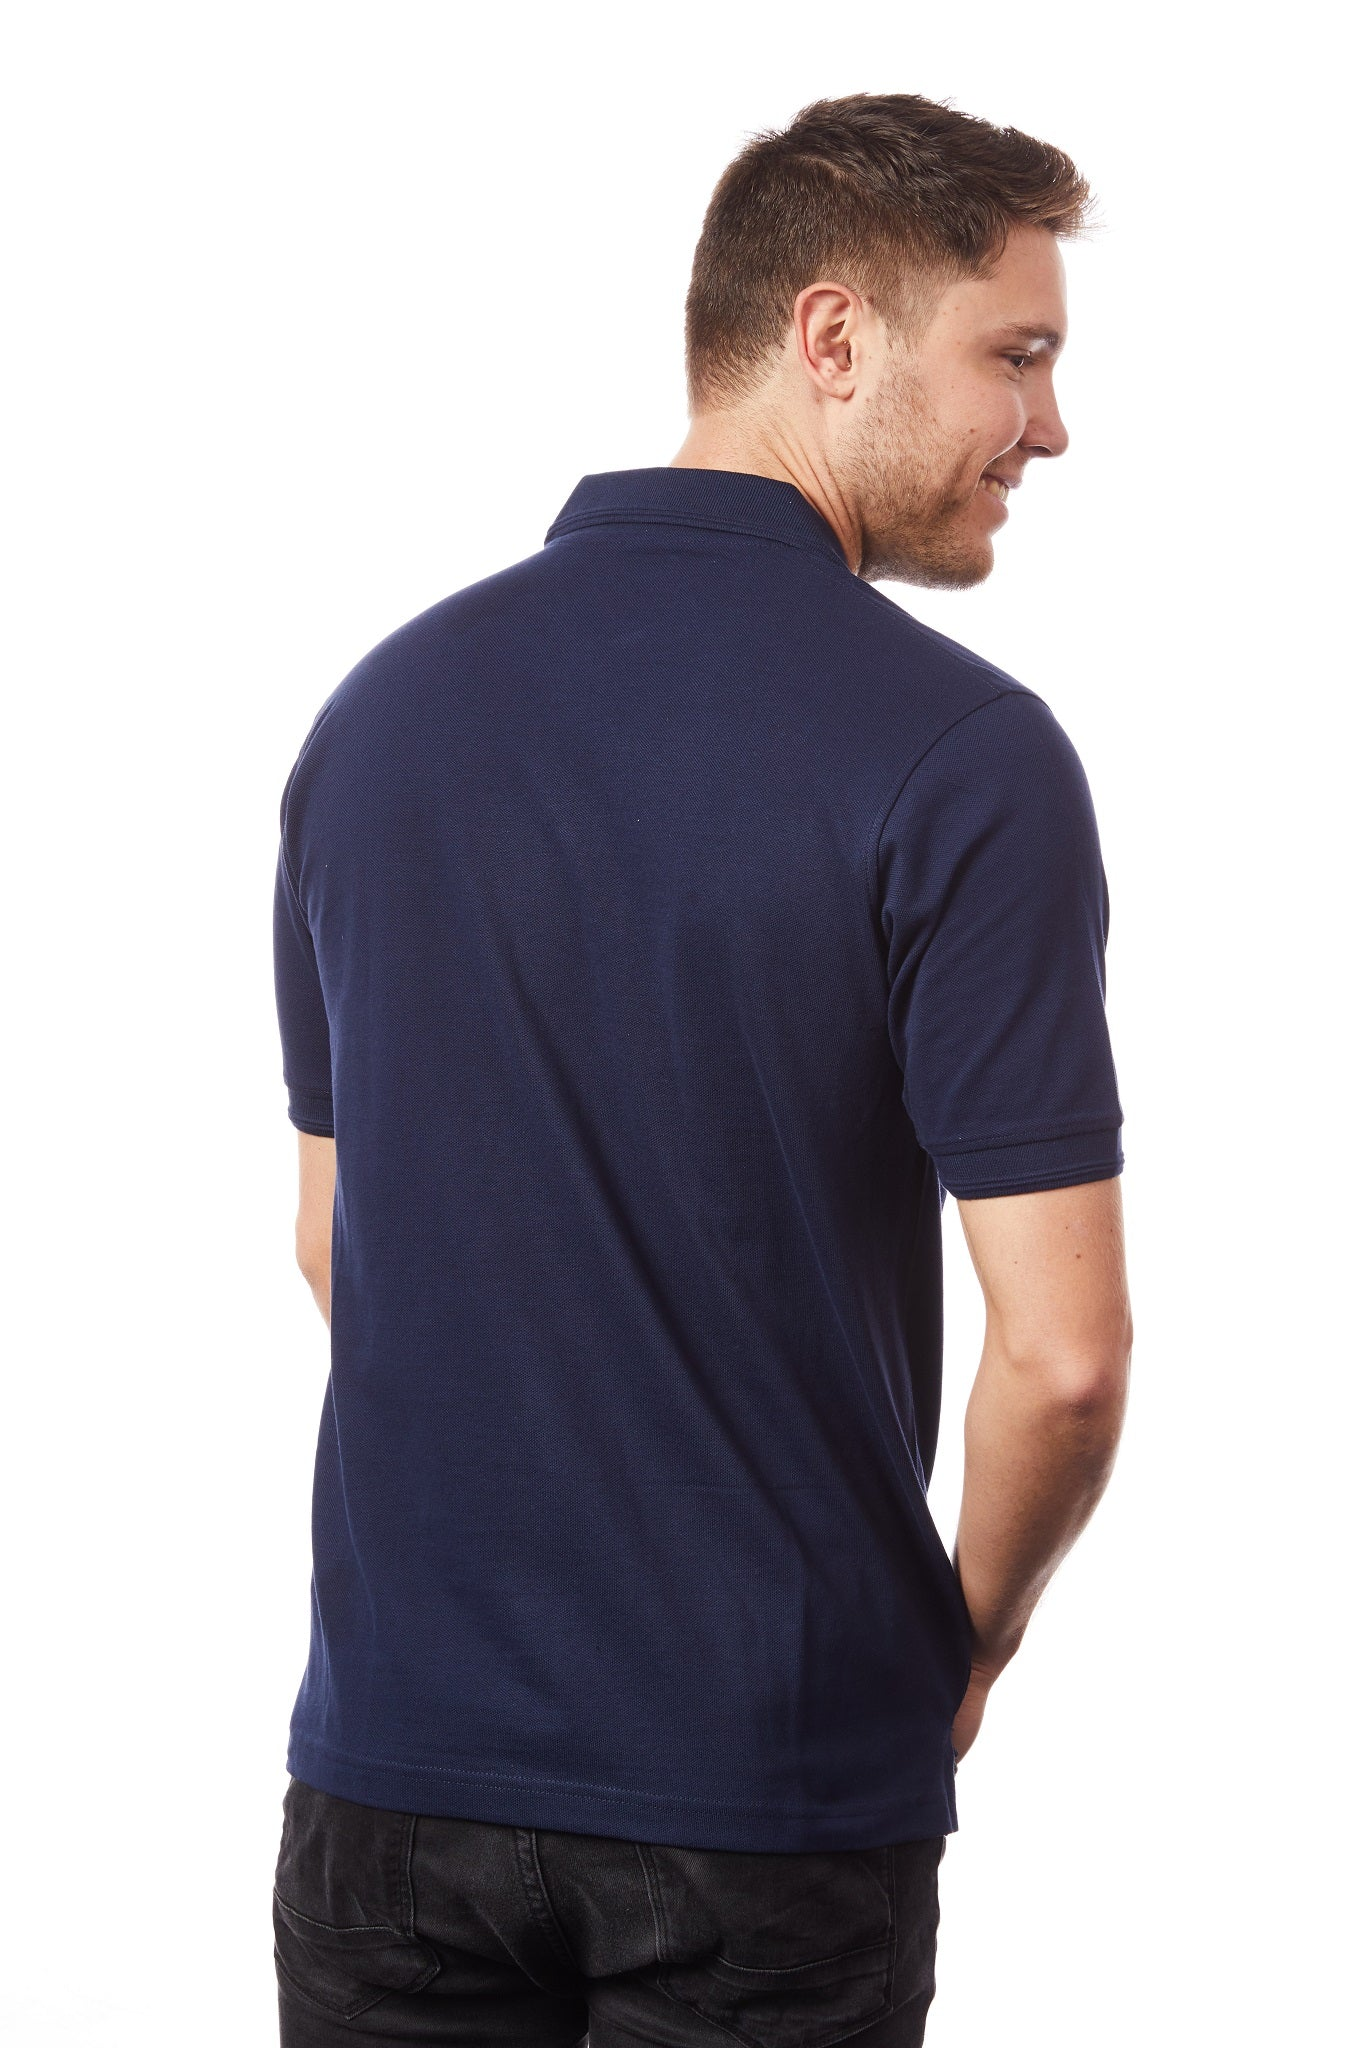 Tipsy Koala Men's Navy Polo